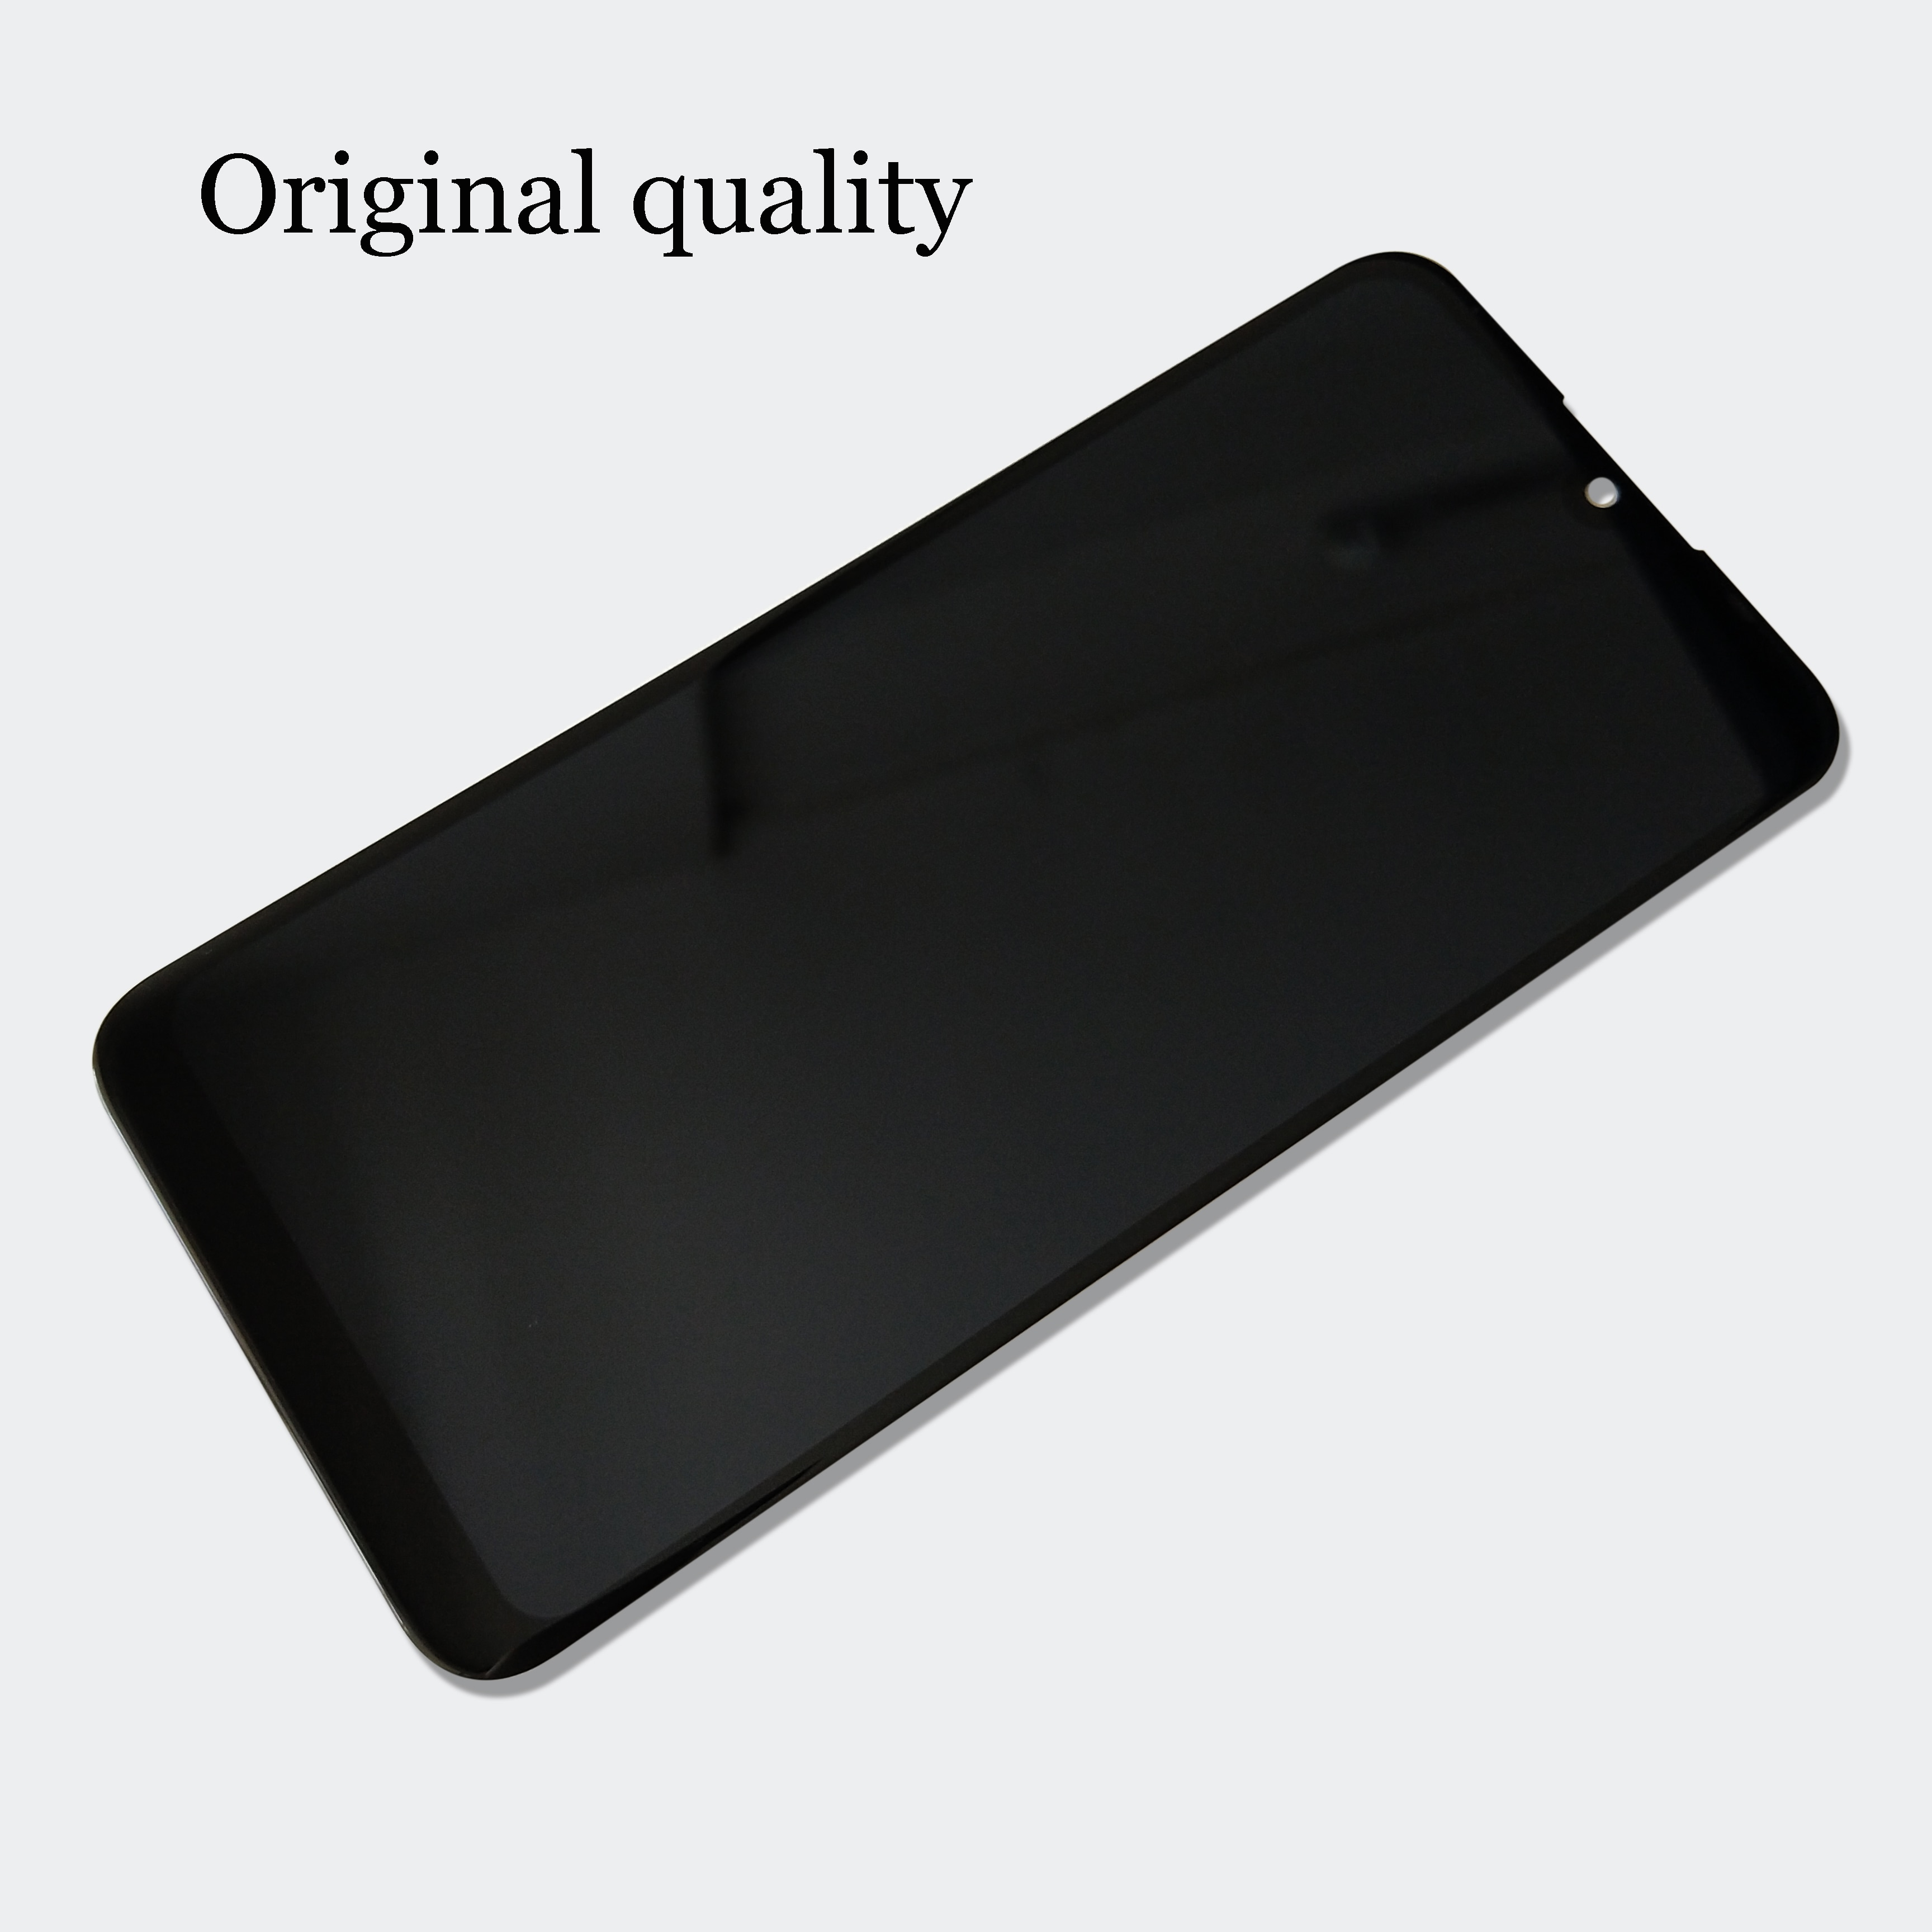 New 6.2inch For TECNO Camon 11S 11 S Touch Screen With Lcd Display Panel Lens Glass Digitizer